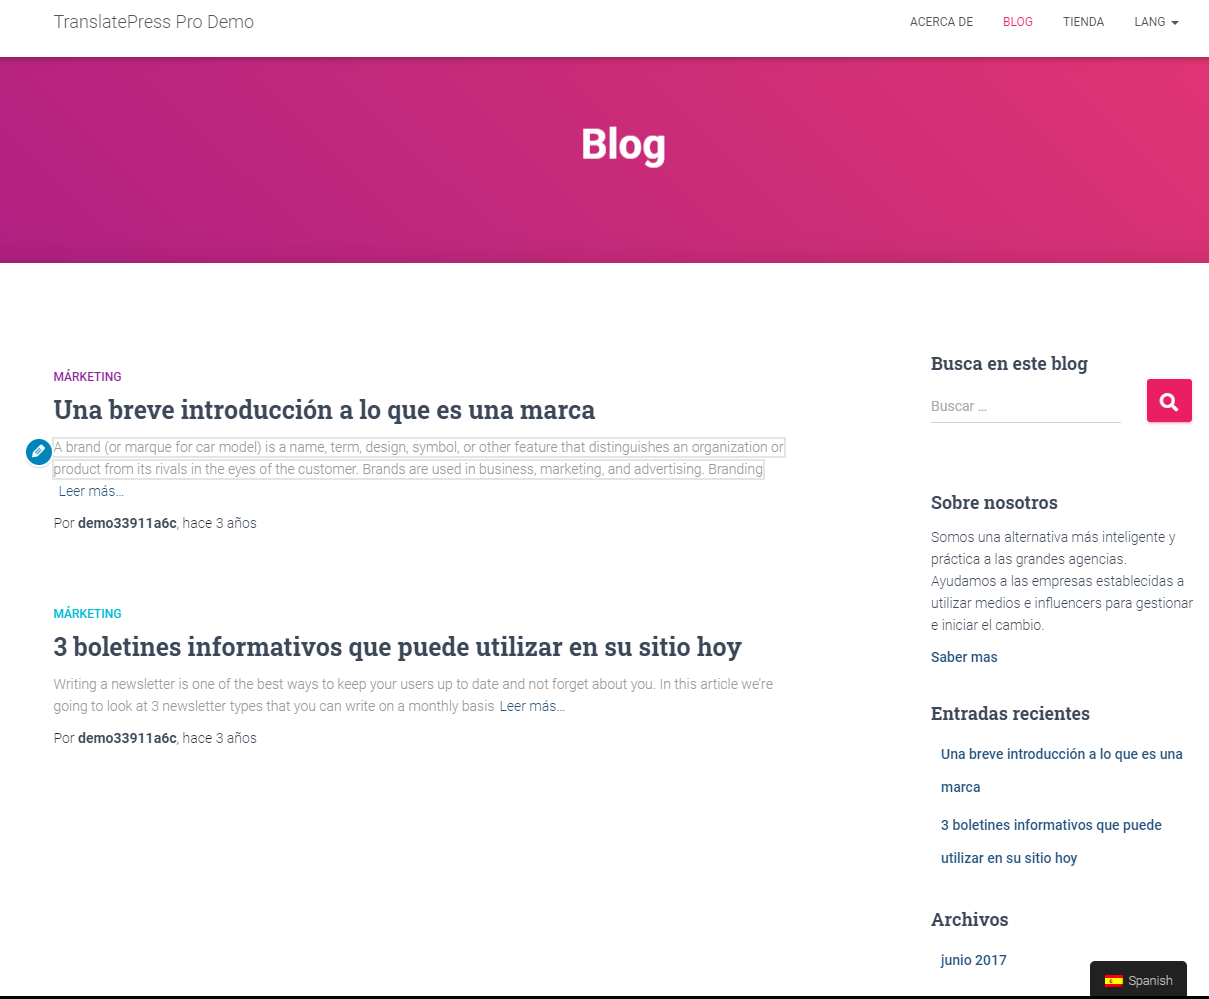 Blog with translated widgets